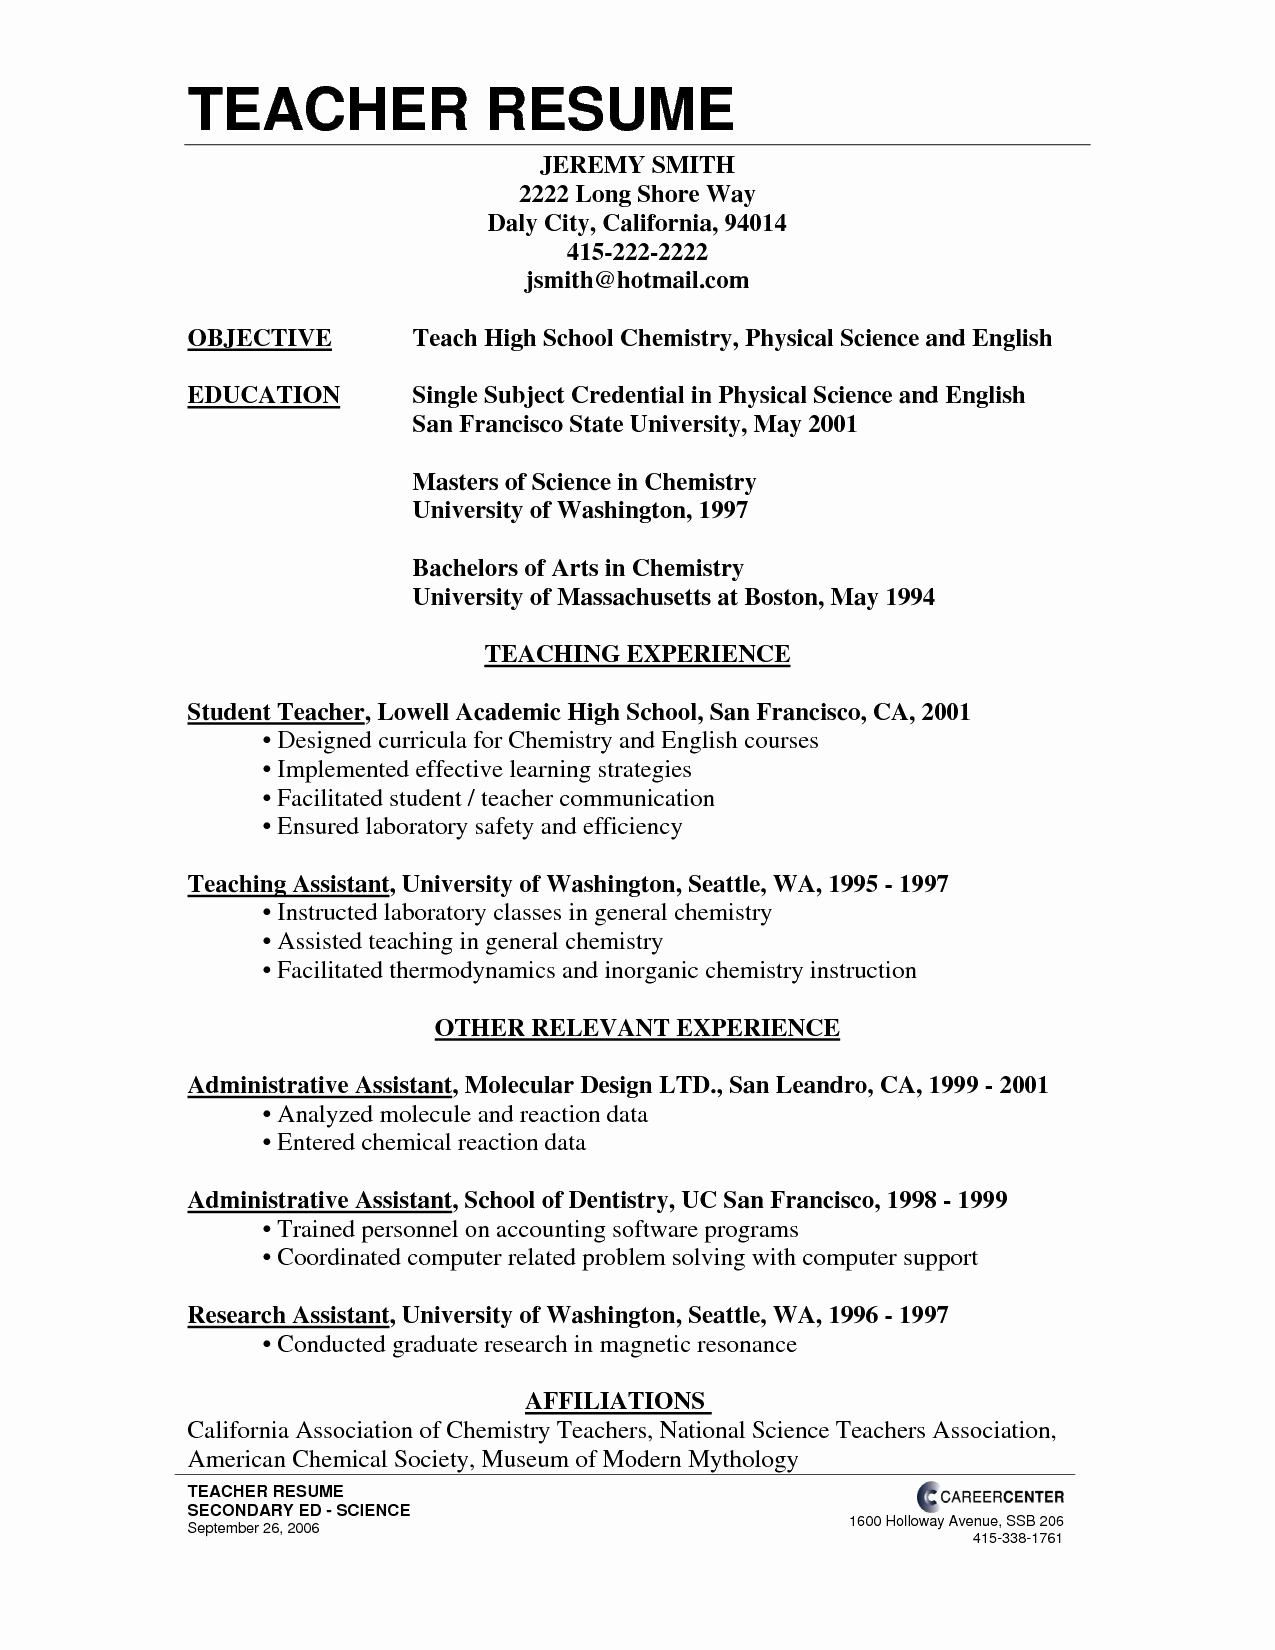 best free cover letter template Collection-Resume Cover Letter Example New Free Cover Letter Templates Examples Best Od Specialist Sample 17-i